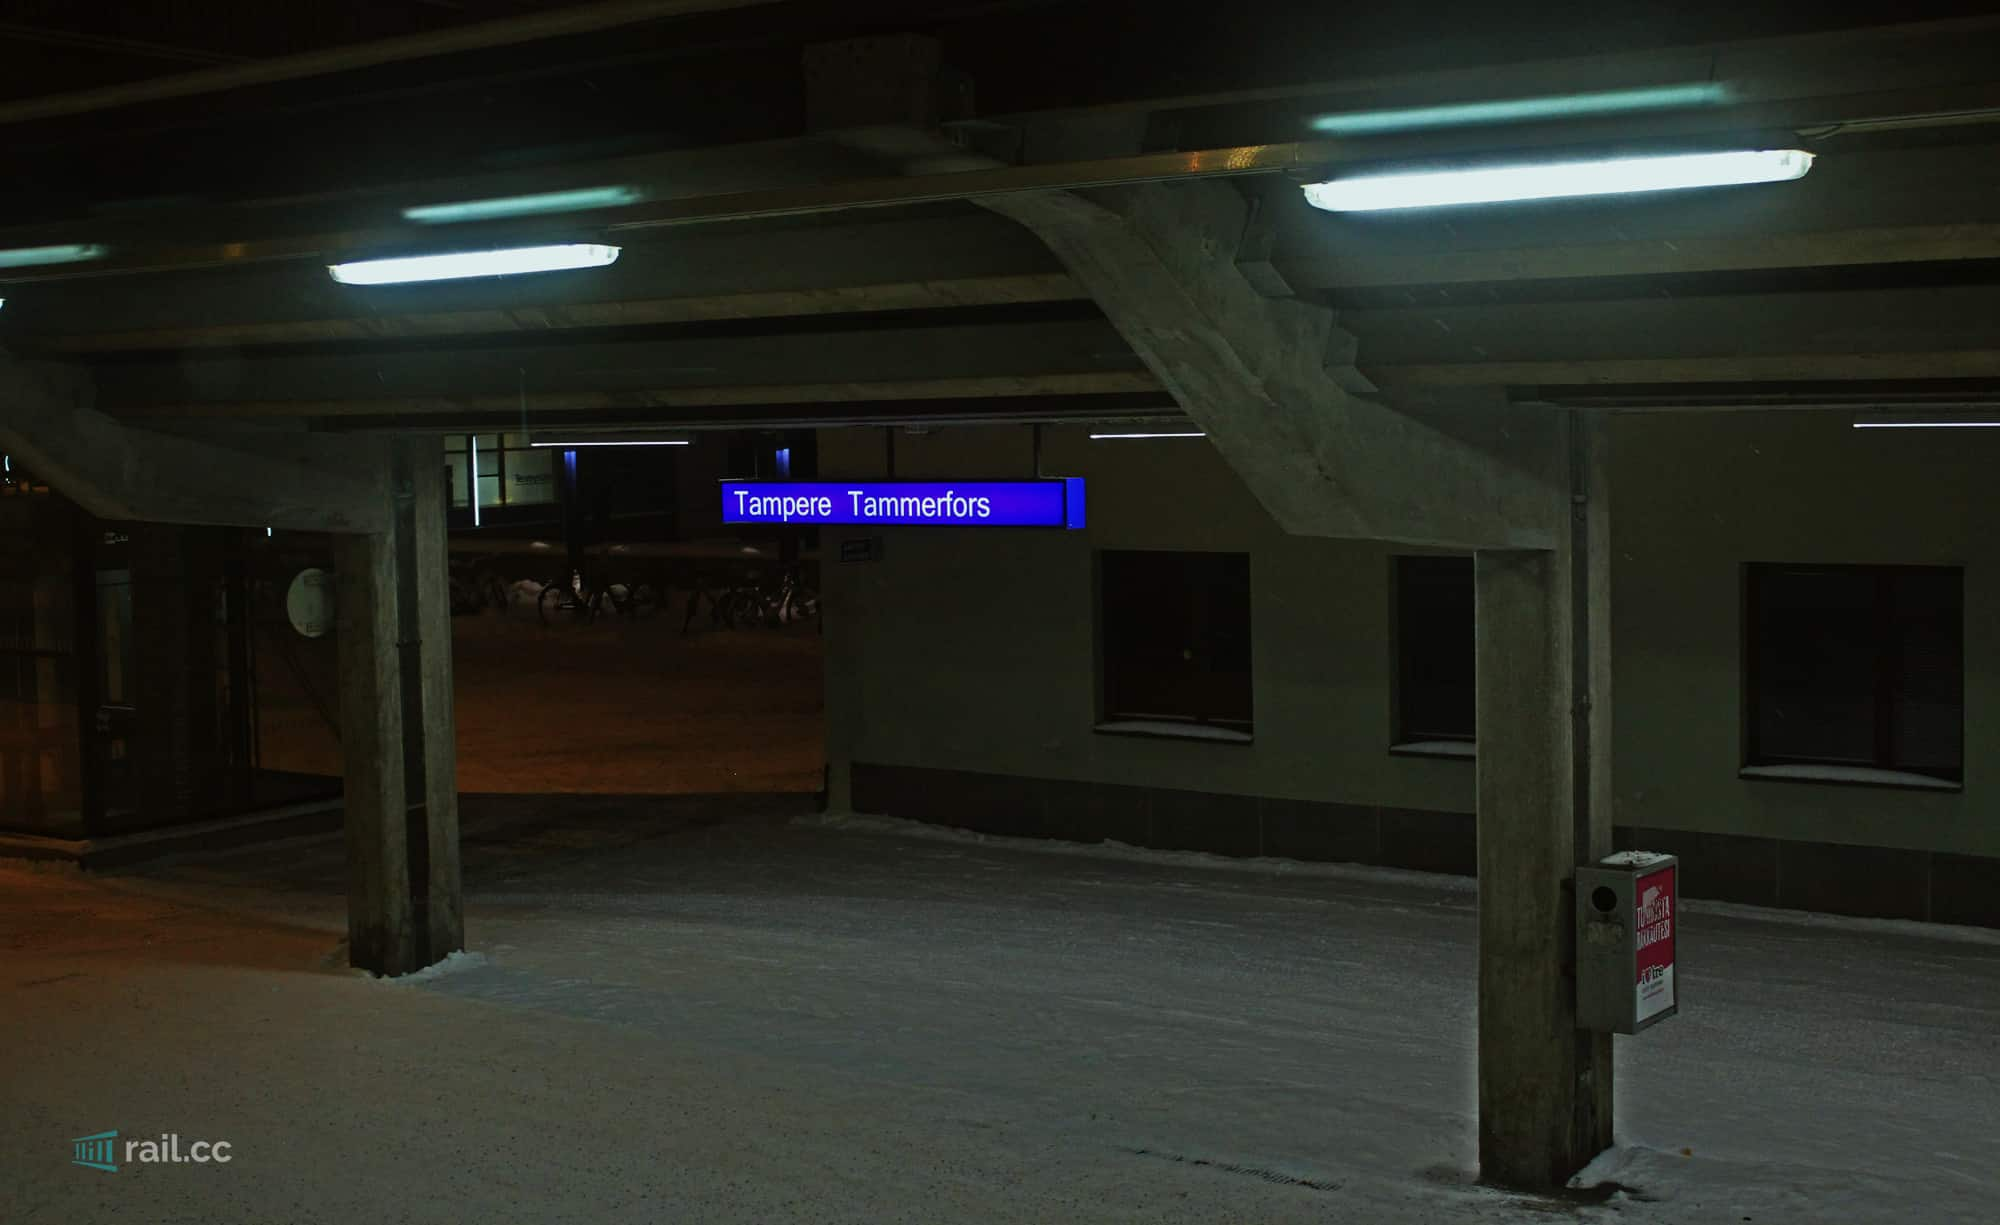 Tampere railway station at night